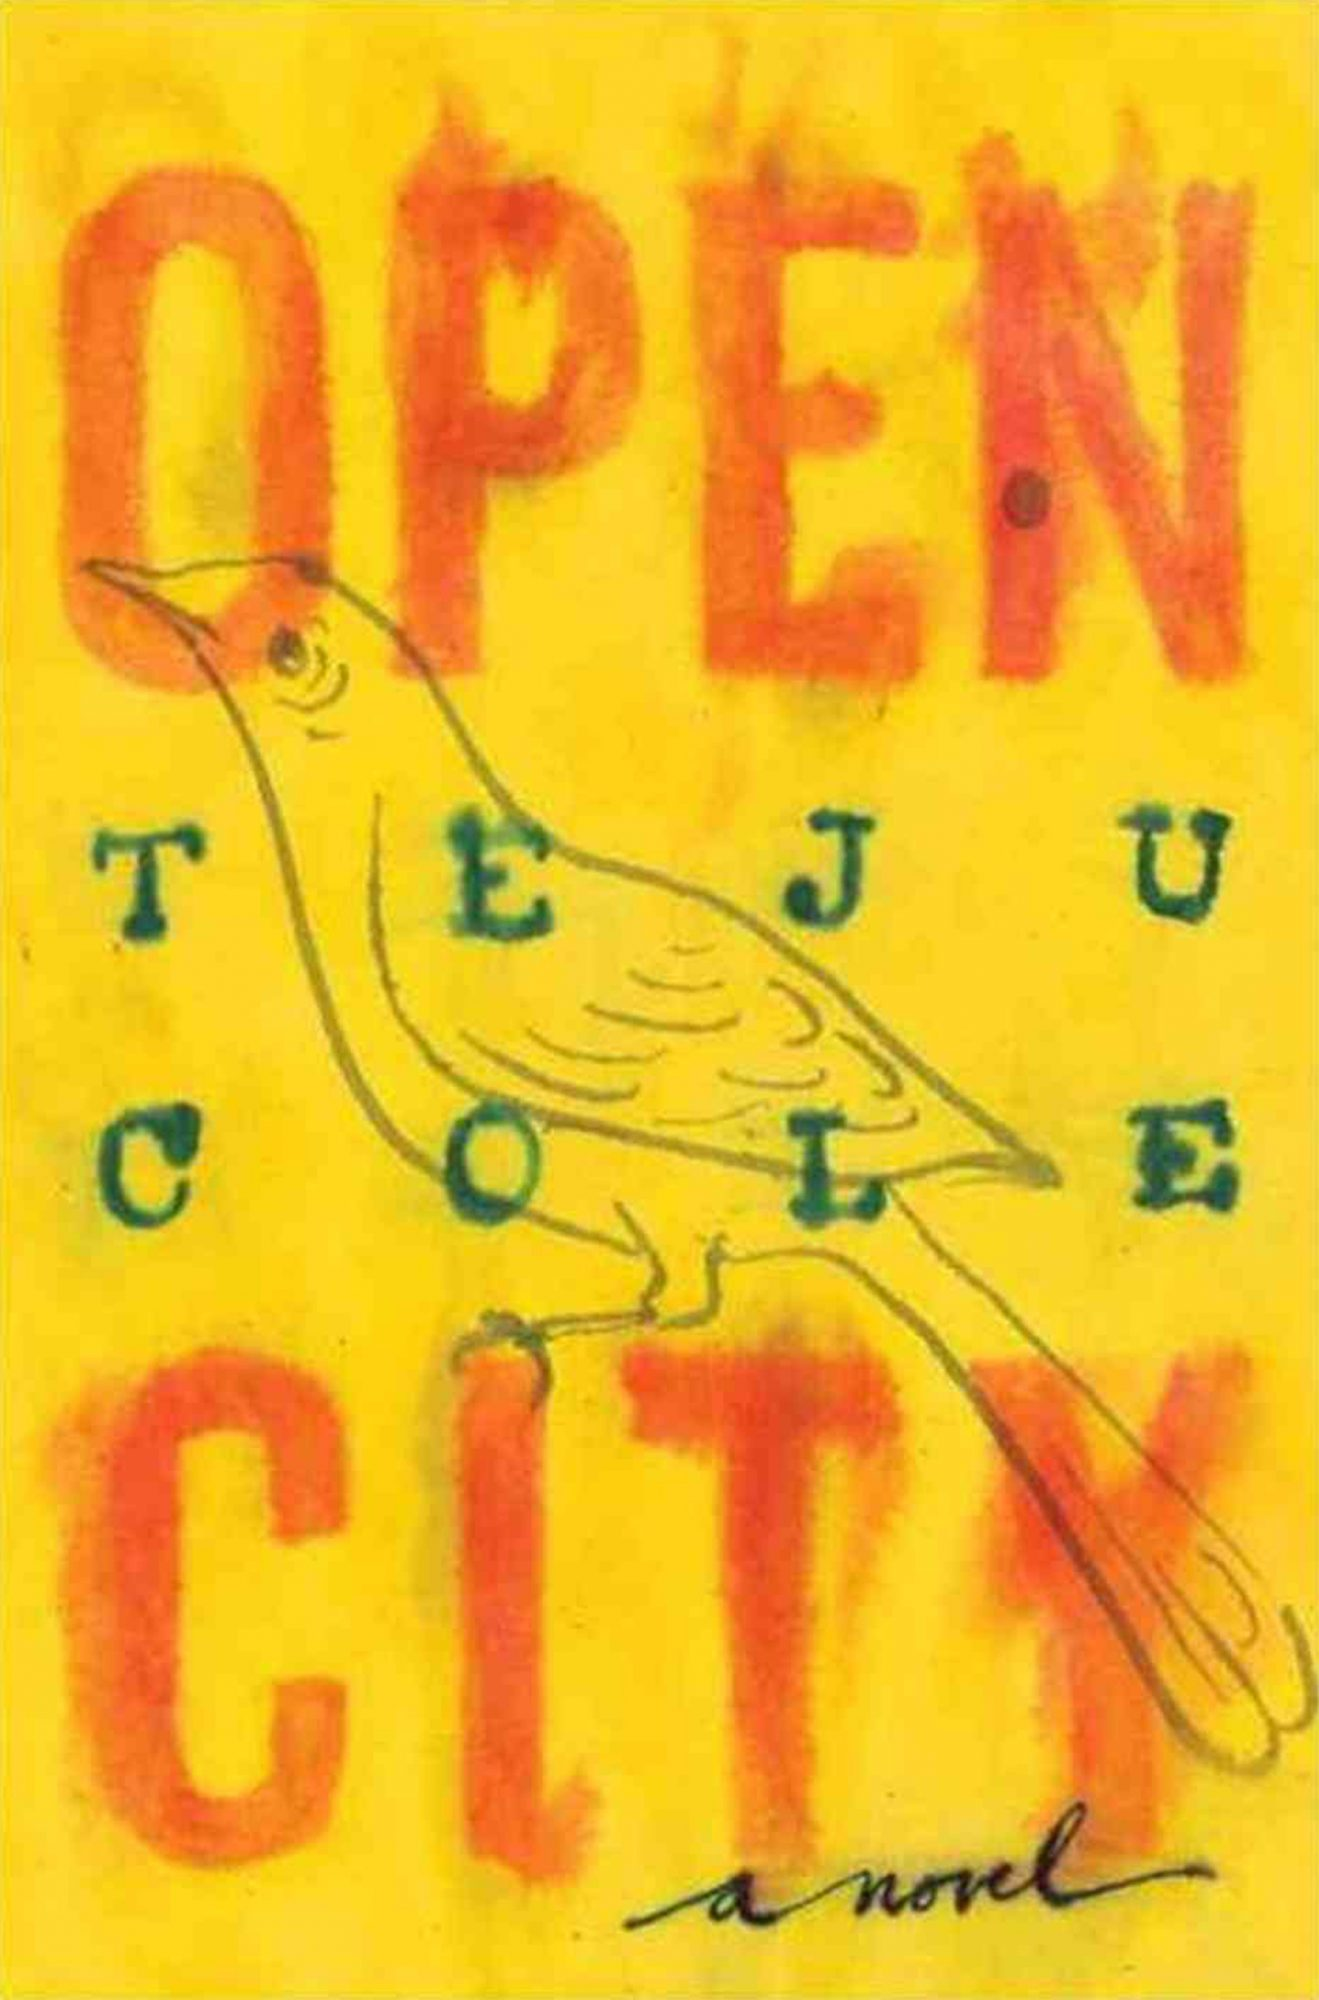 Open City, Teju Cole